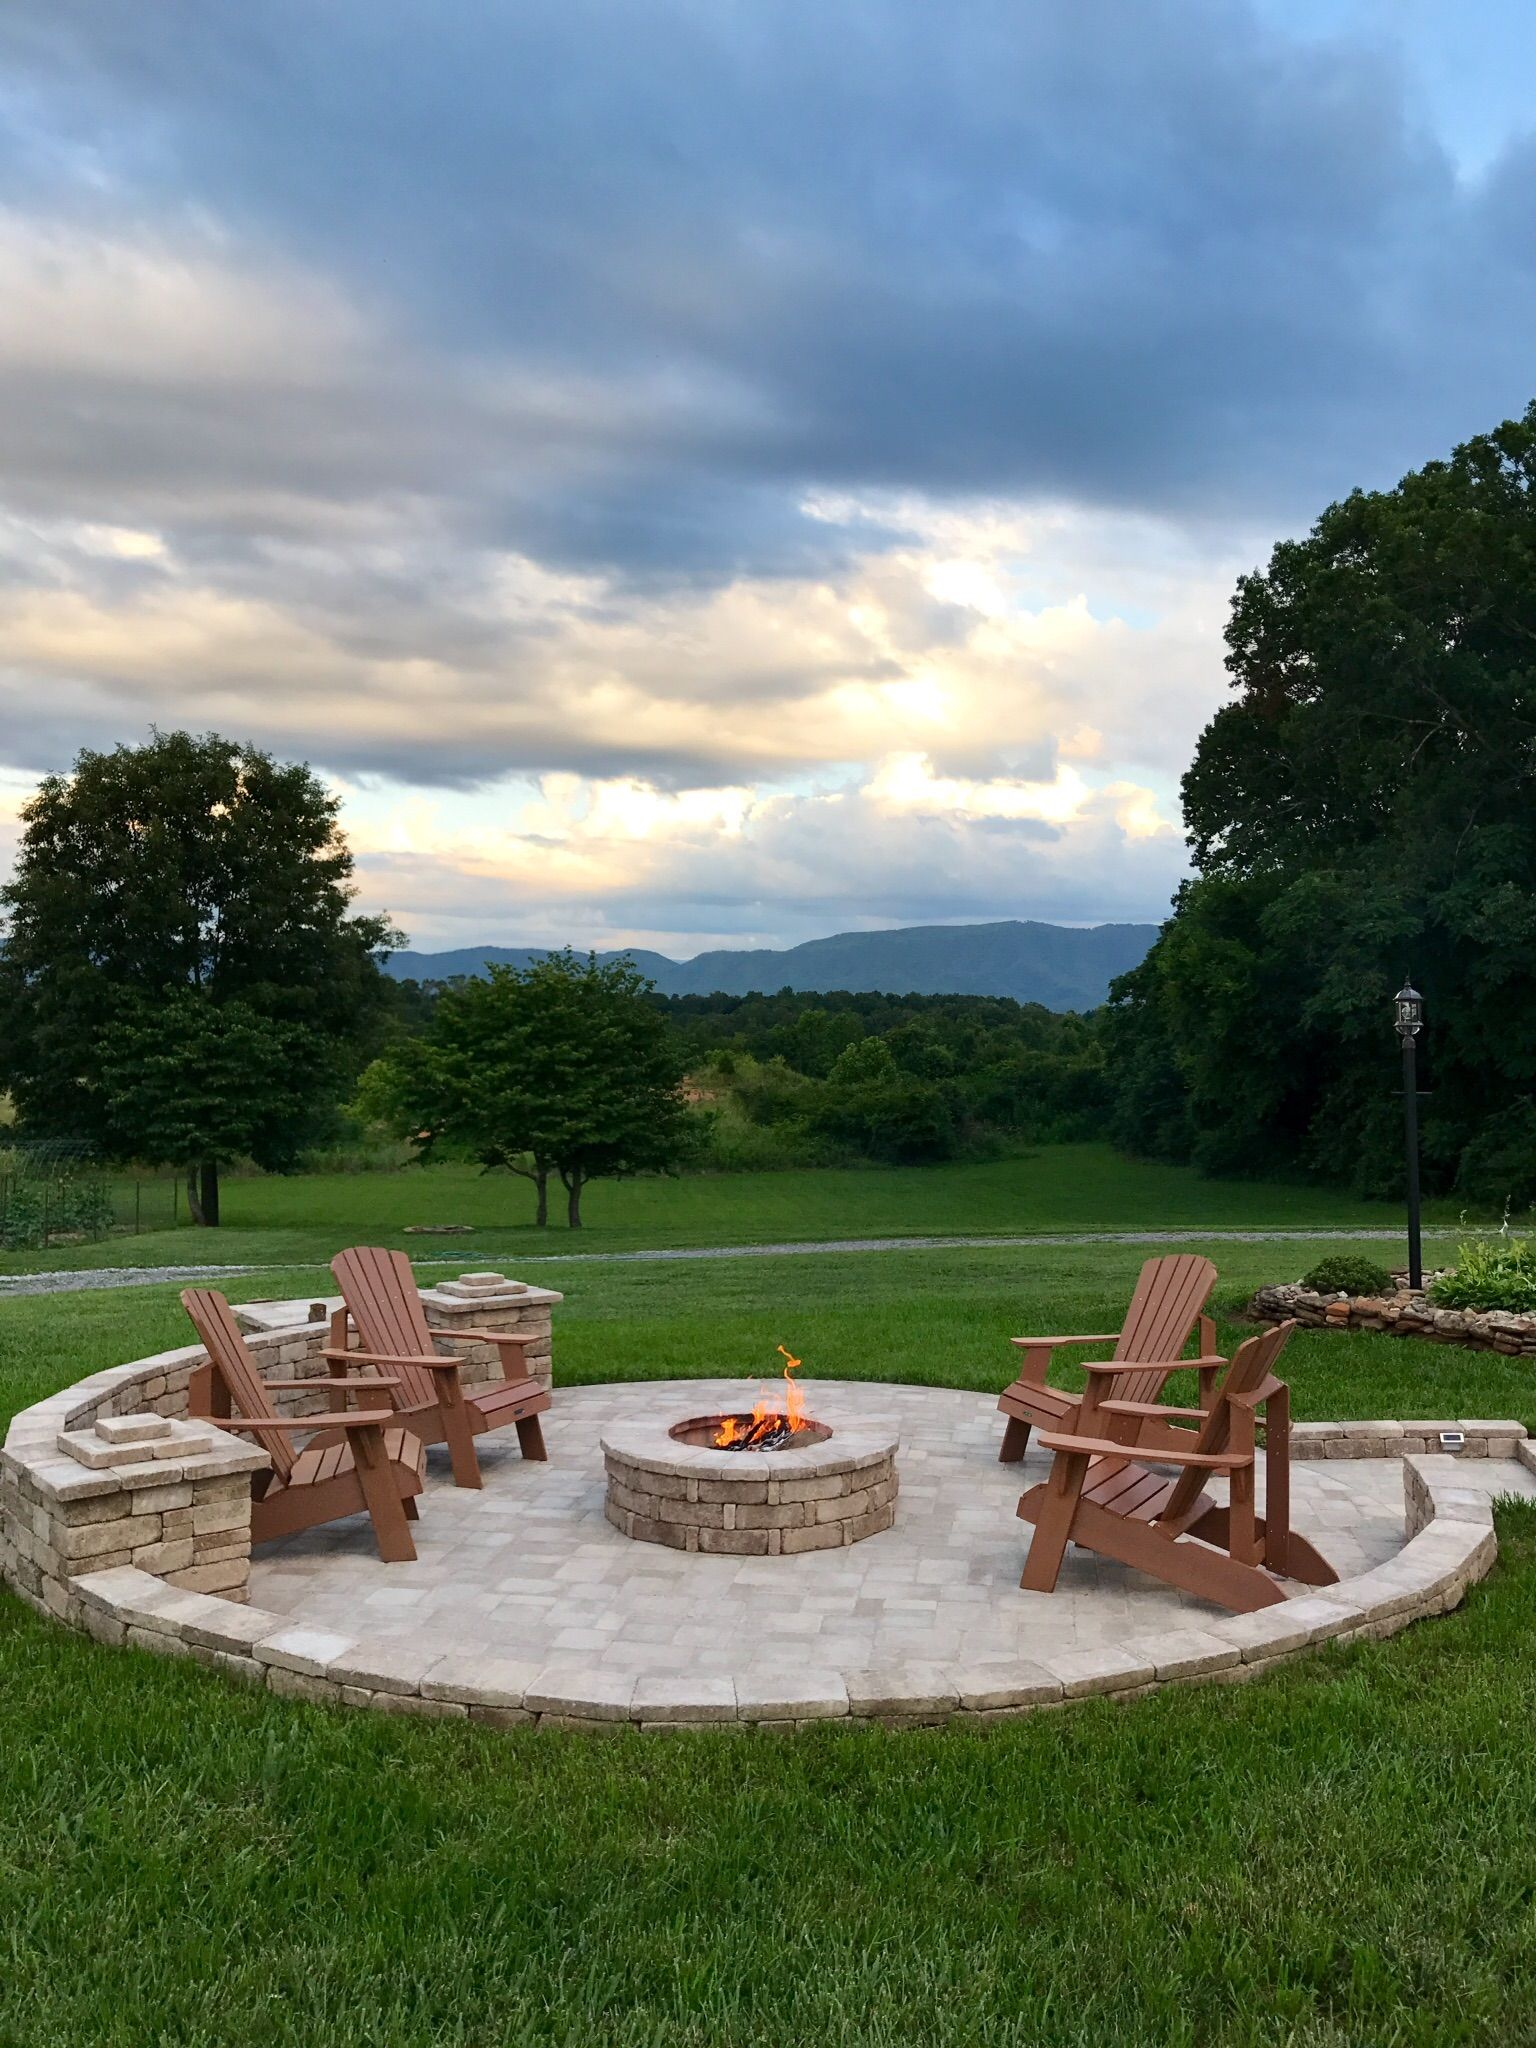 Pinterest Inspired Diy Fire Pit With View Of The Beautiful Smoky Mountains Outdoor Designs Outside Pits